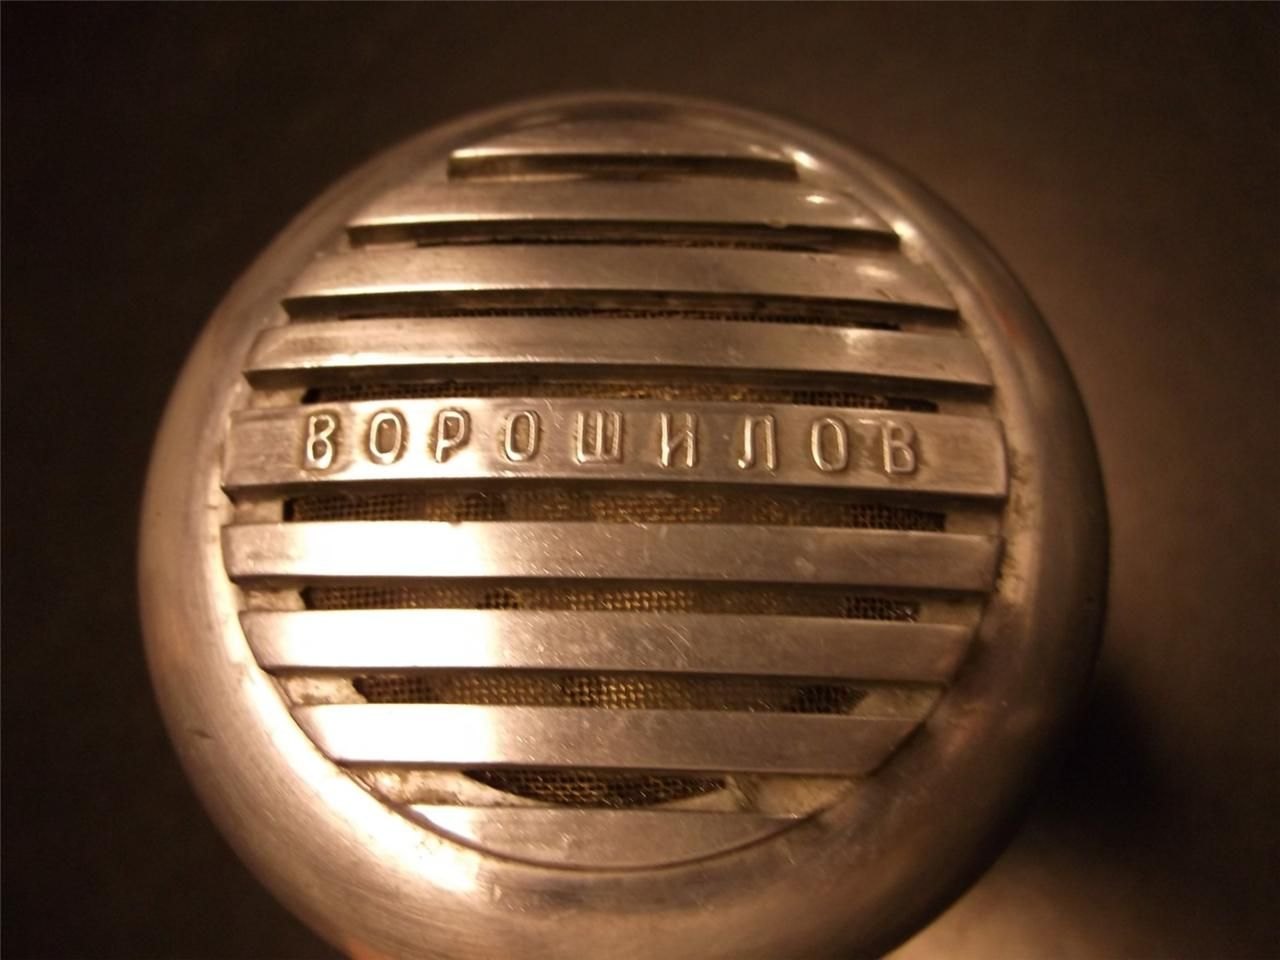 Russian mic - Bop and Pow in the name, how cool is that?